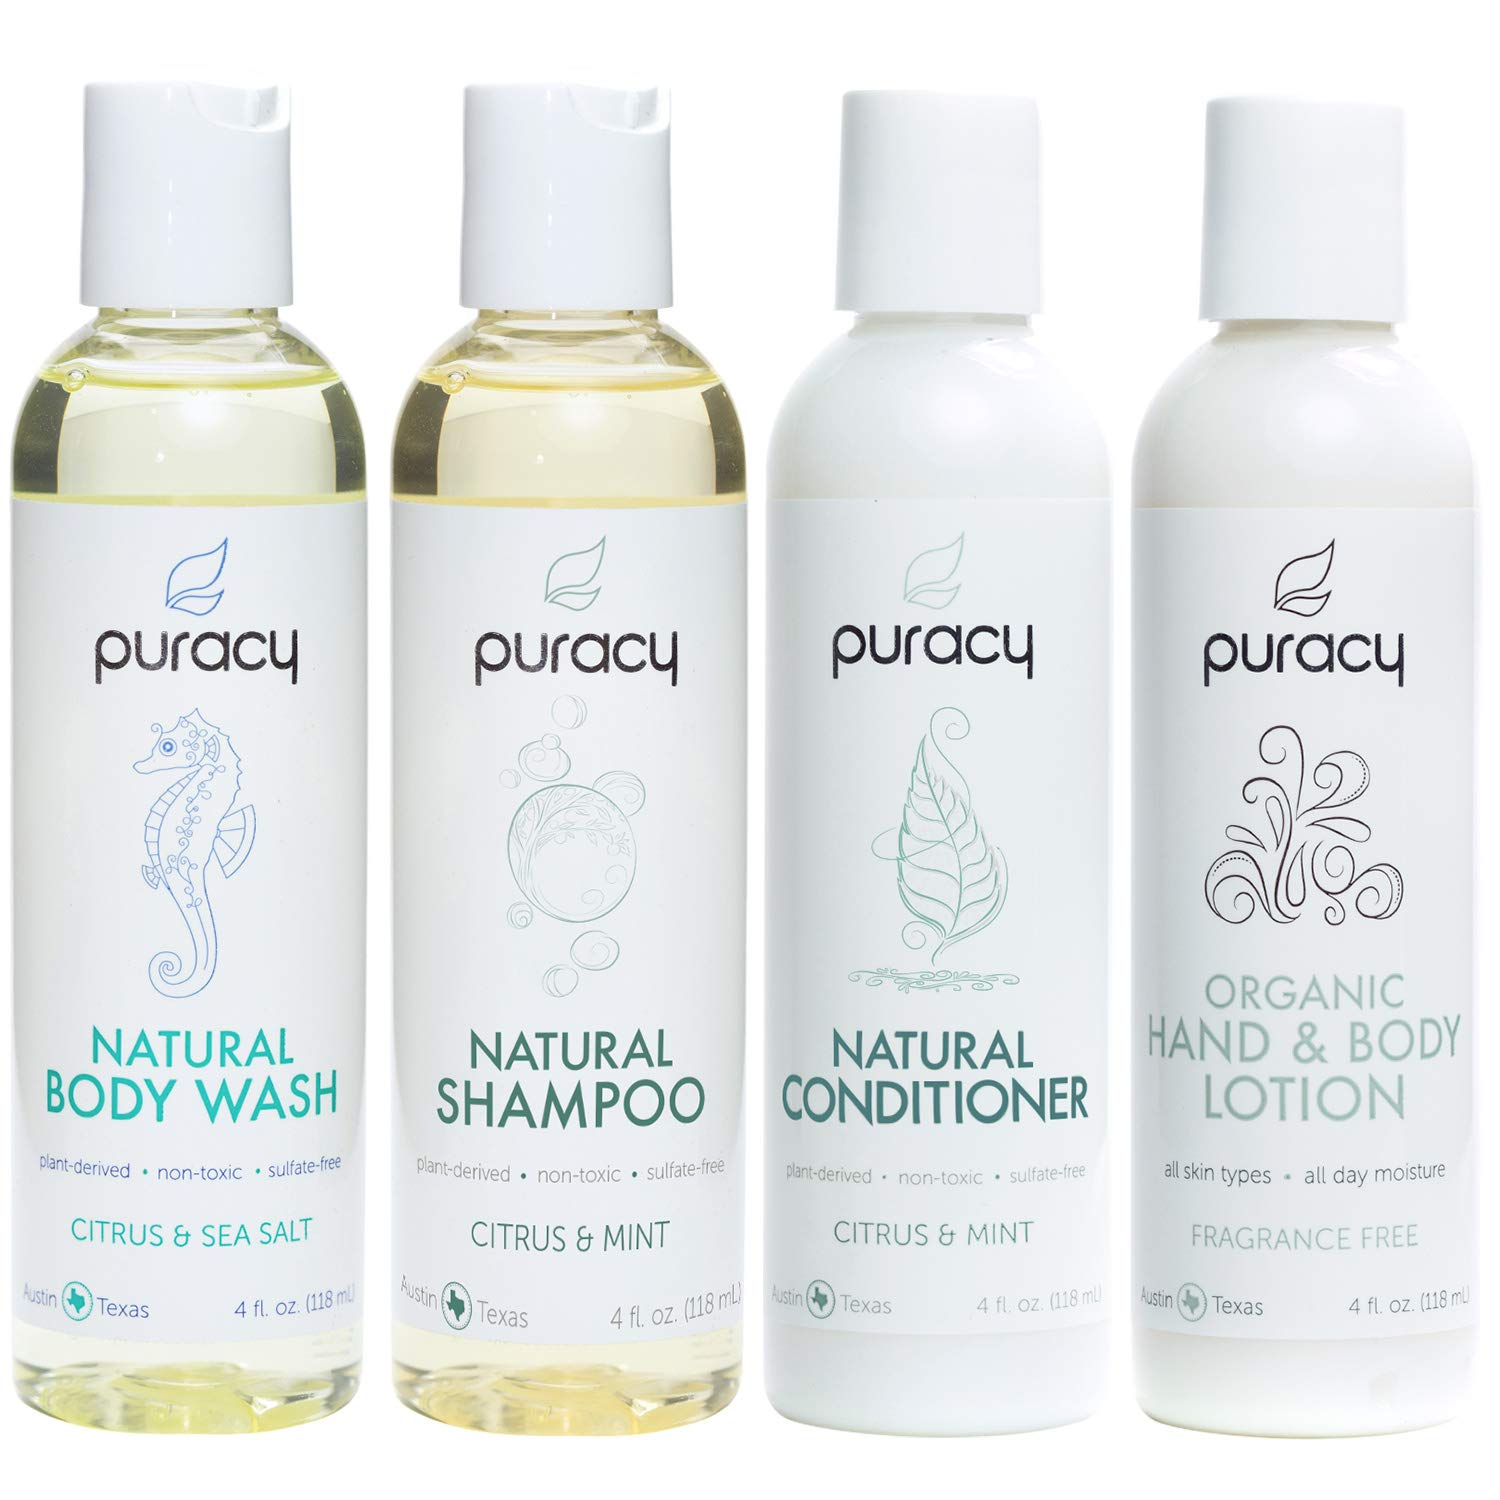 Puracy Organic Personal Care Travel Set (4-Pack), Natural Body Wash, Shampoo, Conditioner, Lotion Gift Box by Puracy